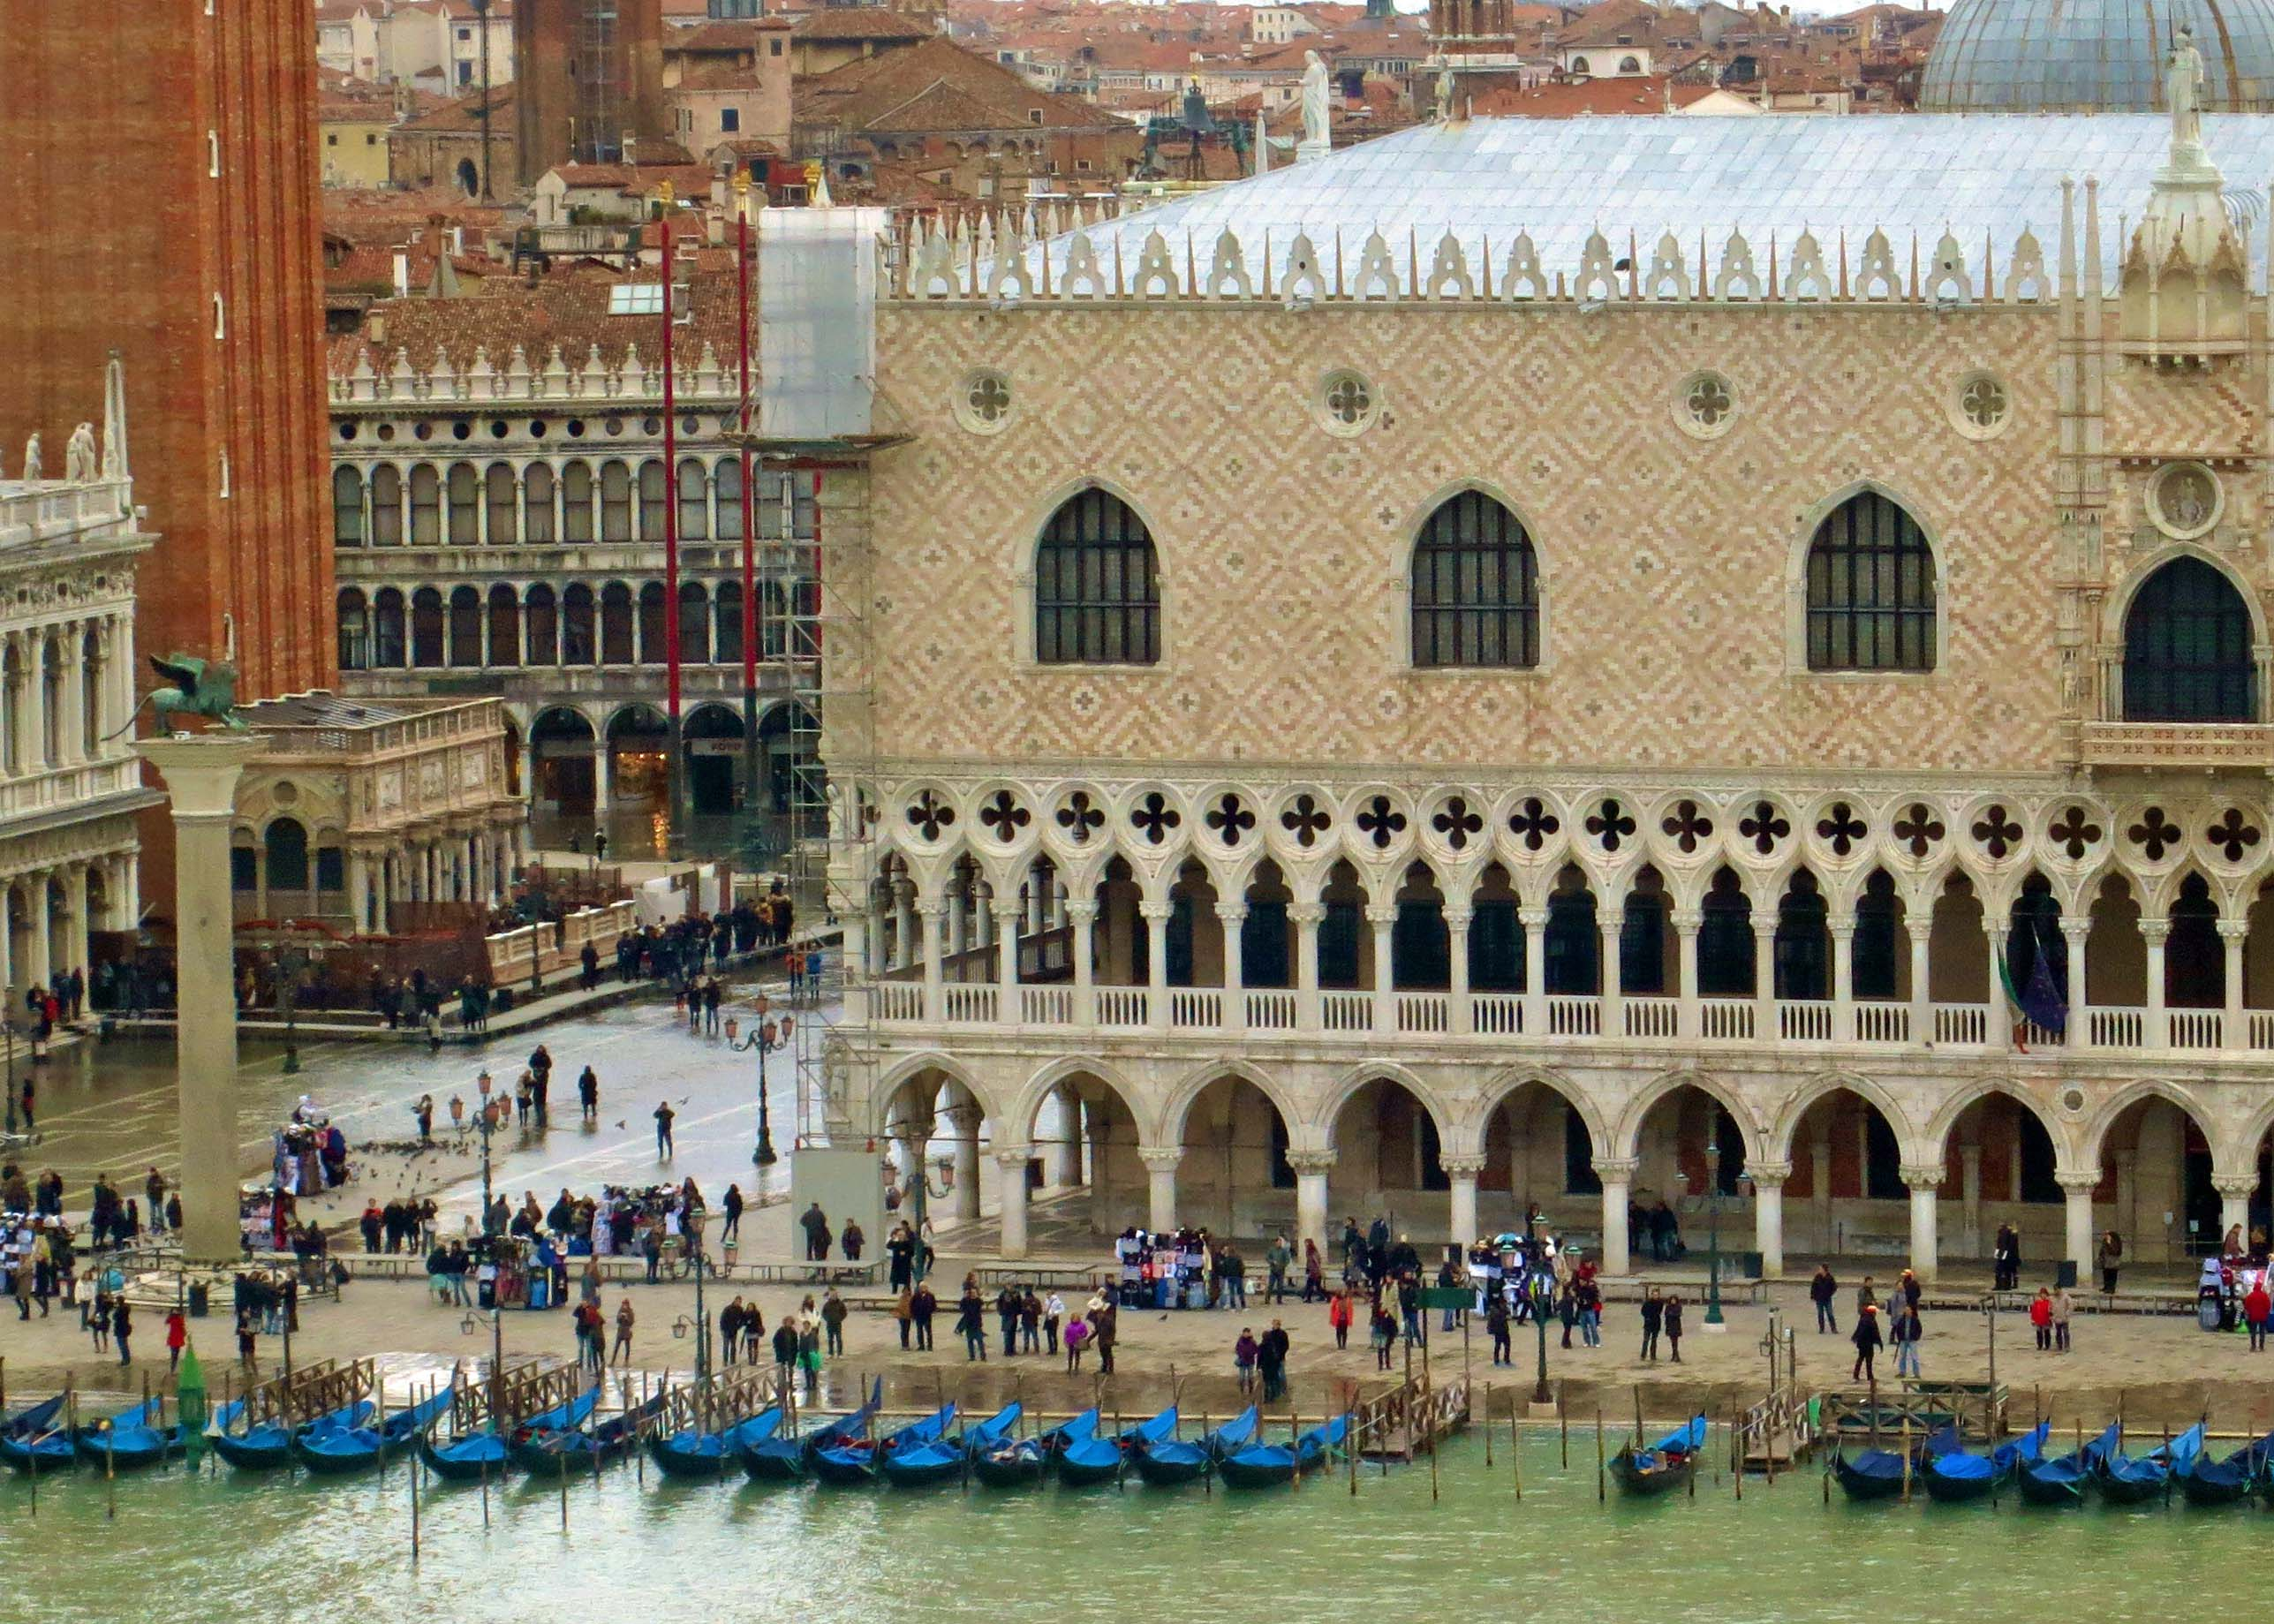 And we arrived. The building on the right is the Doge's Palace. Next to it is the beginning of St. Mark's Square... the center of Venice.